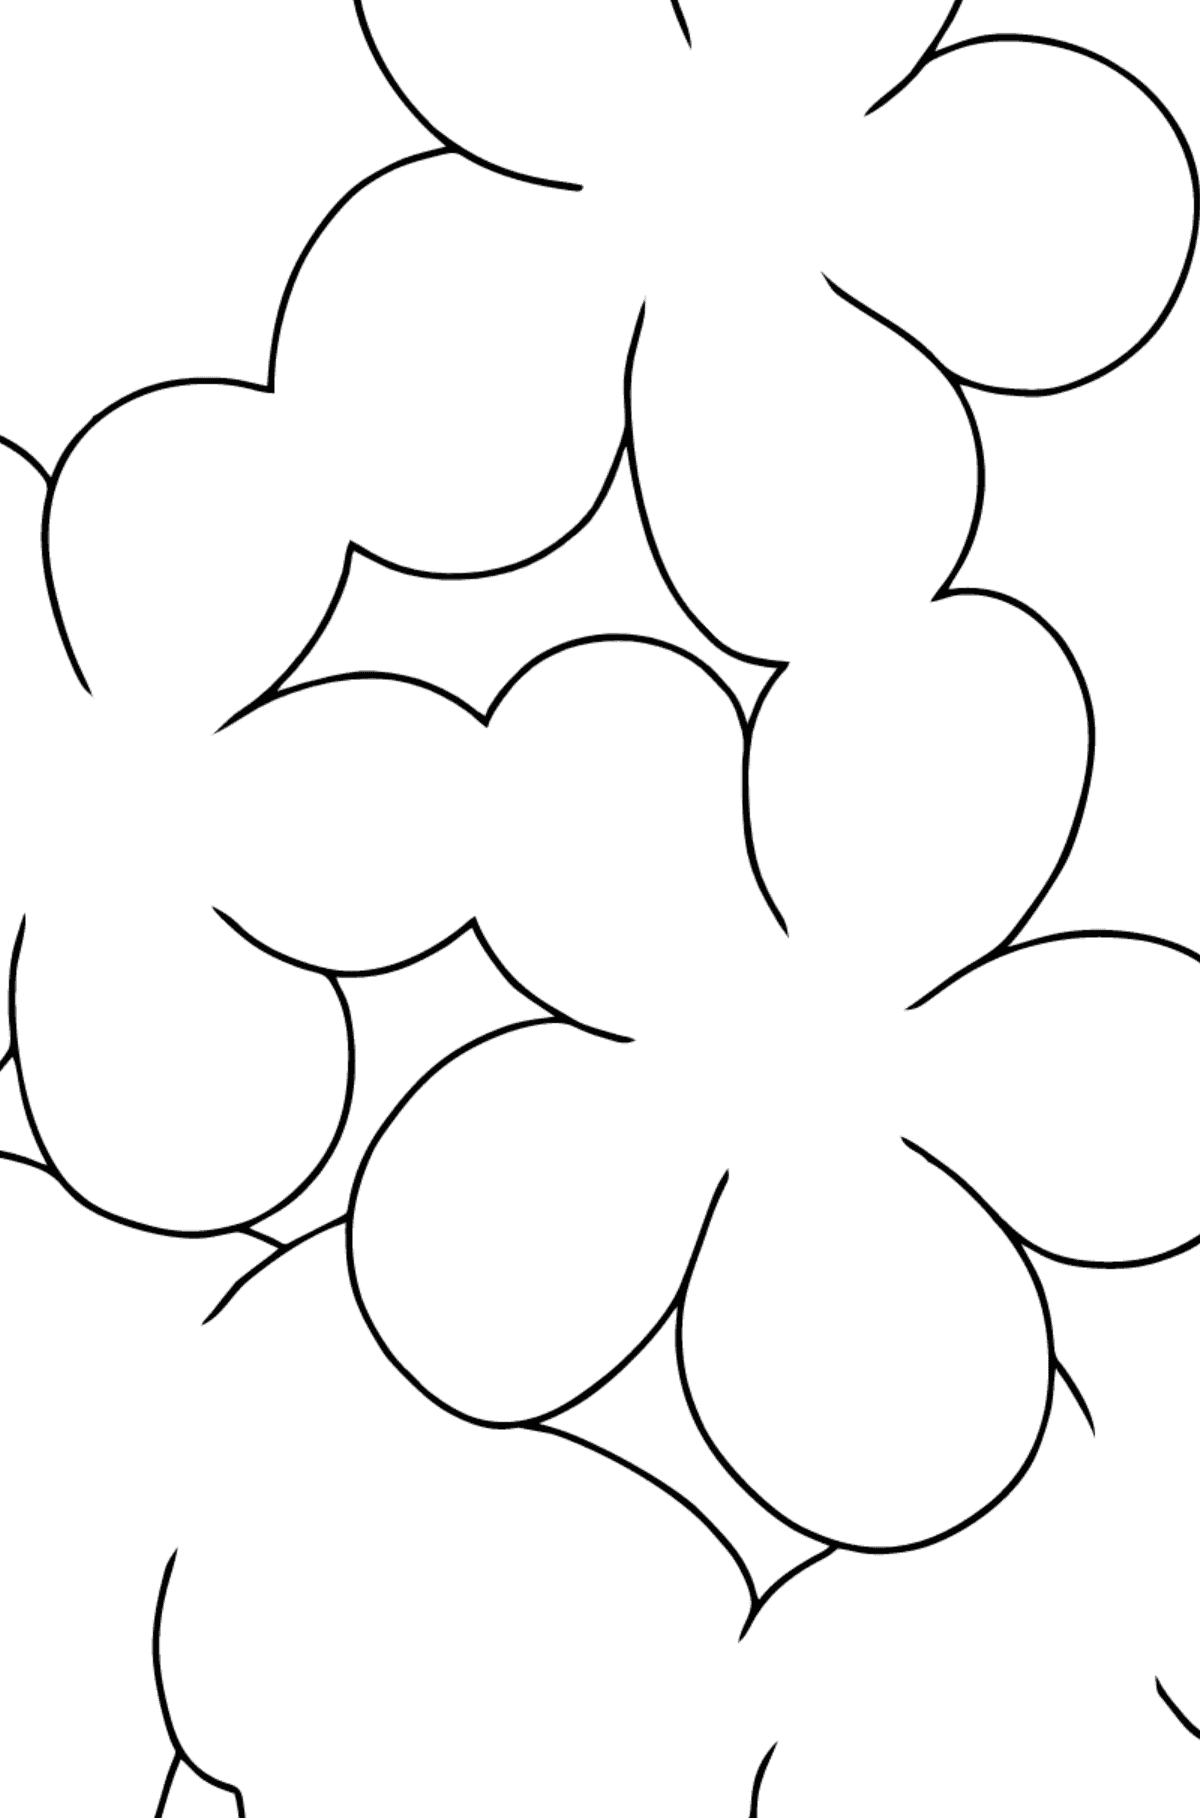 Coloring Page - Spring and First Flowers - Math Coloring - Subtraction for Kids